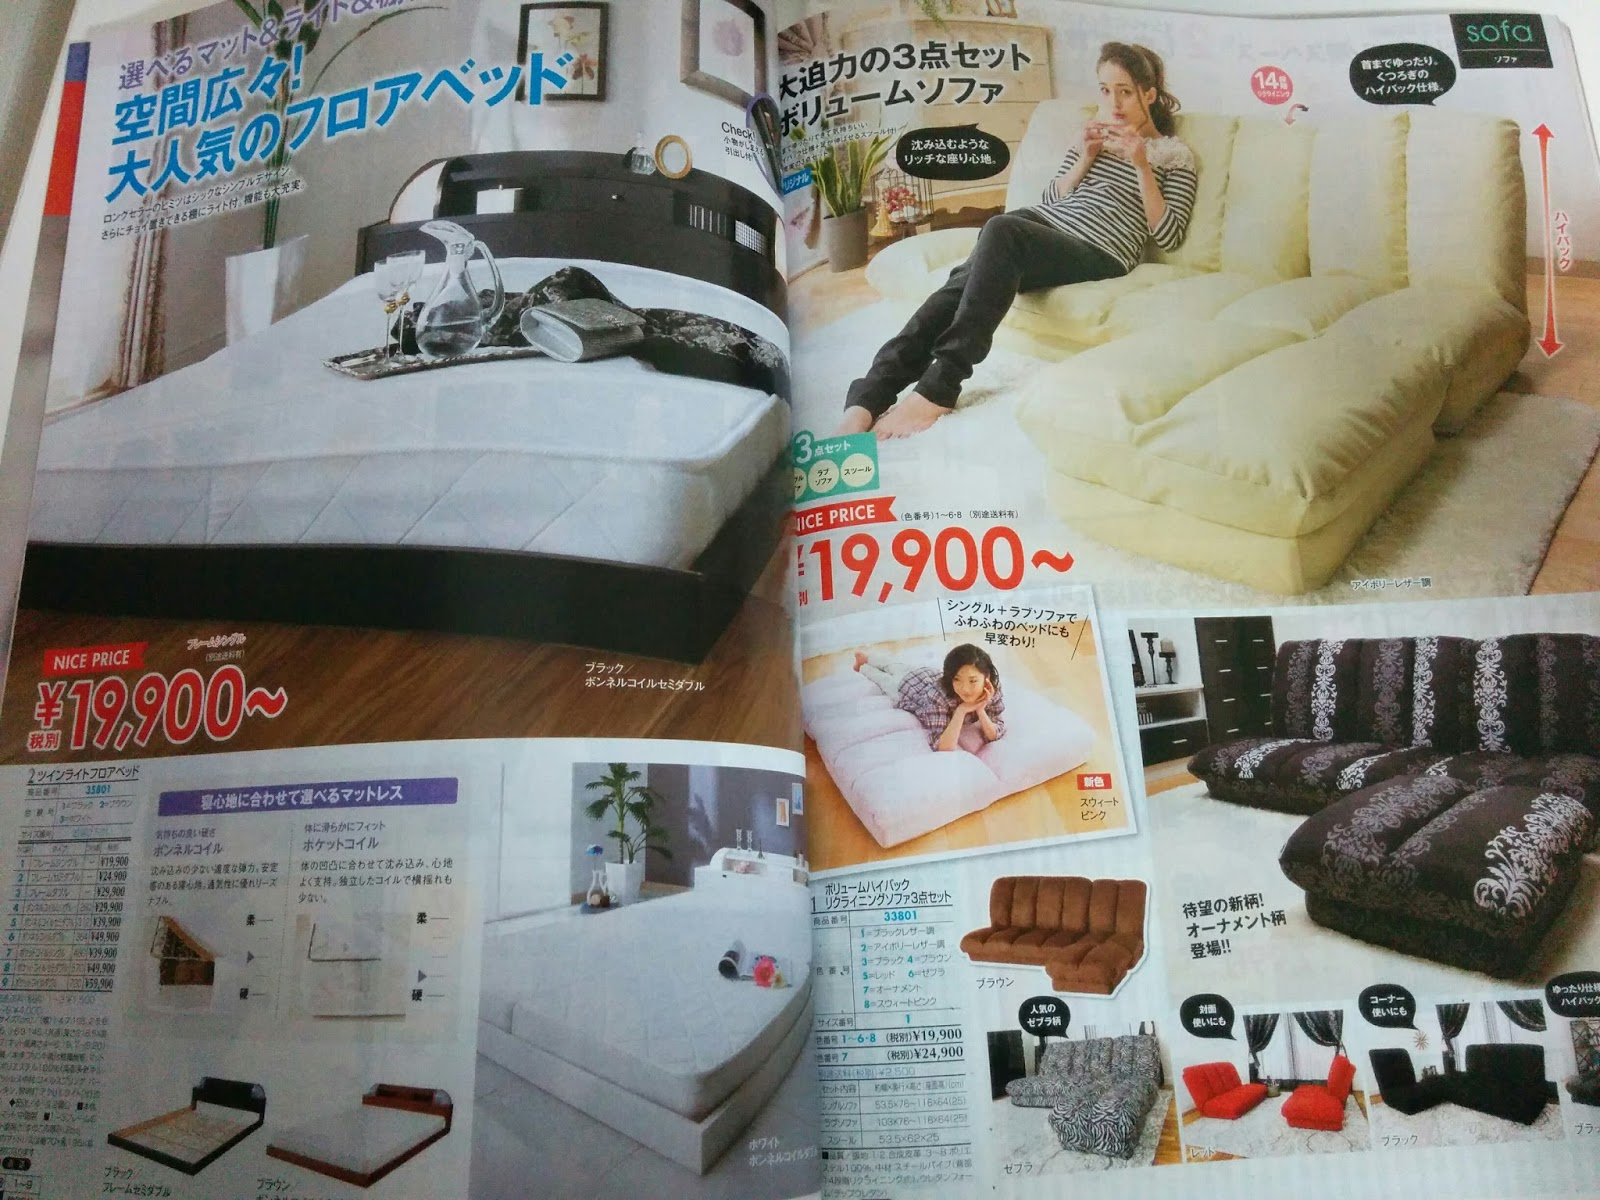 Japanese House Decor, Style and Furniture Featured in Free Japanese Fashion and Decor Magazine RyuRyu